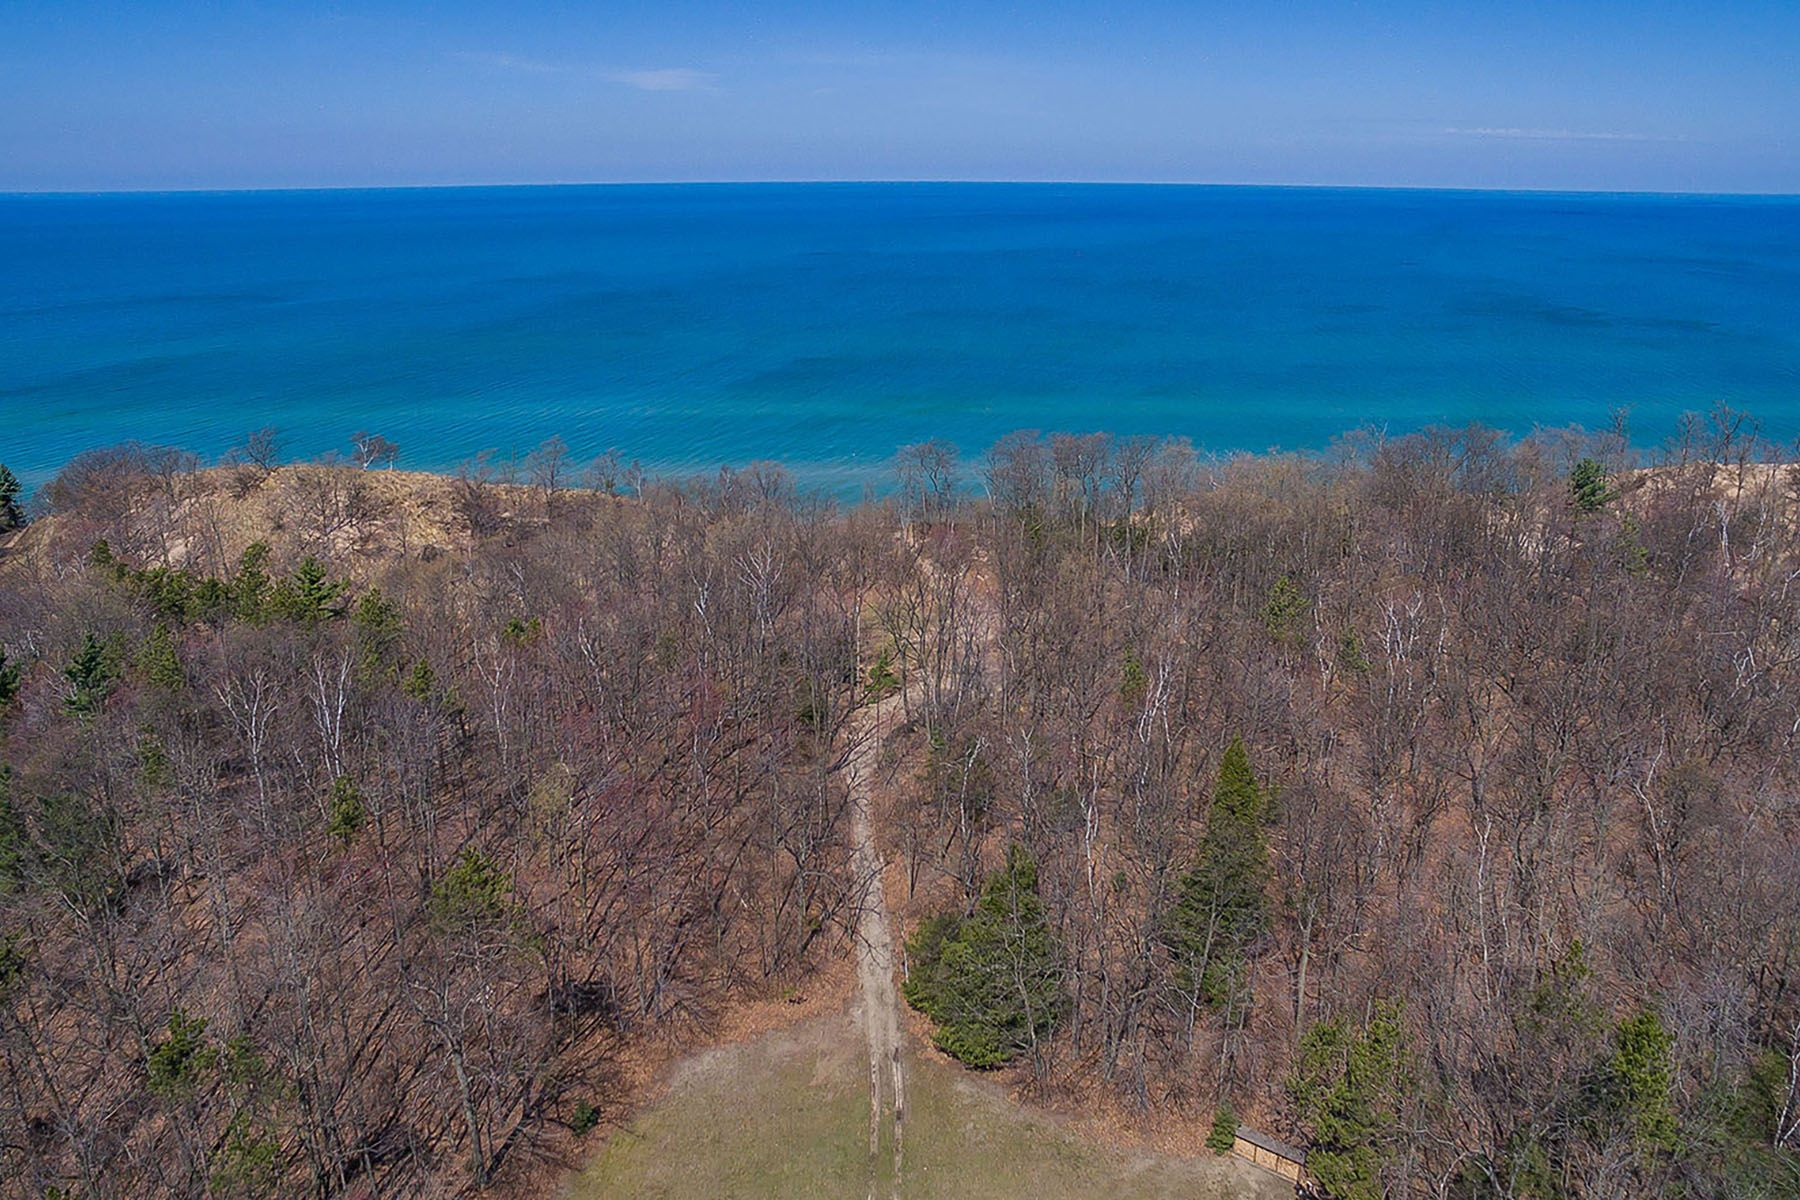 Land for Sale at Serene Lakeshore Property 4500 Lakeshore Road Lot 3 Manistee, Michigan 49660 United States